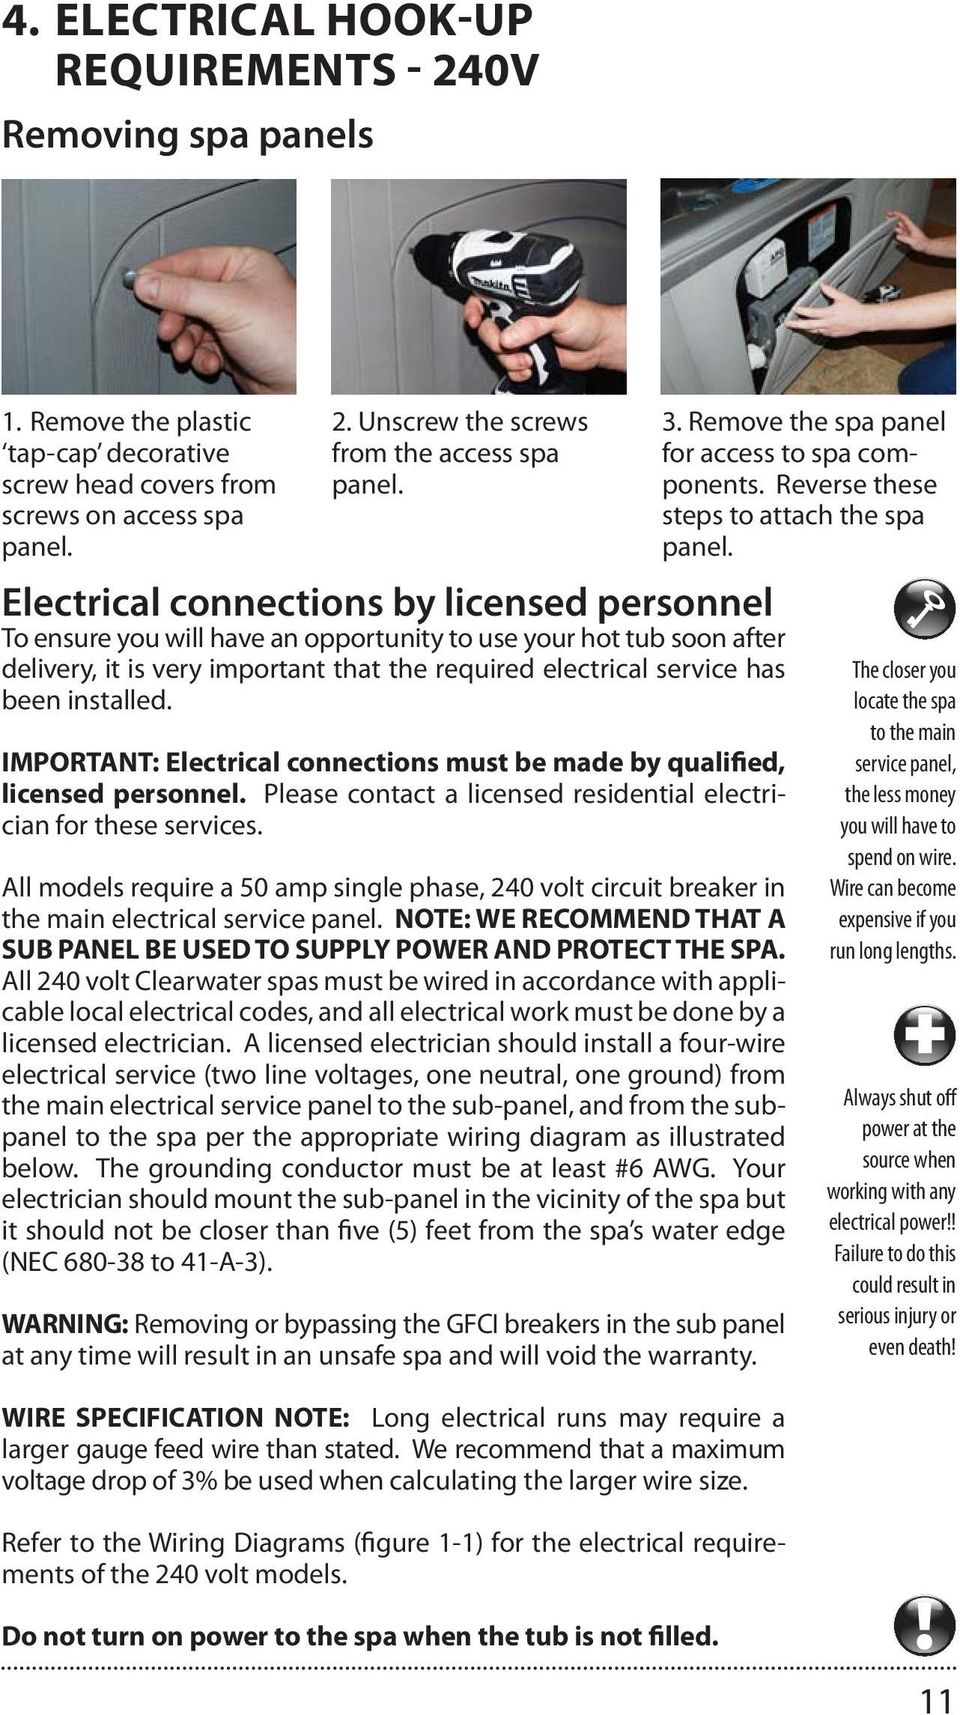 Clearwater Spas Spa Manual Resort Series Beachcraft Xs Wiring Diagram 50 Amp Gfci Breaker Important Electrical Connections Must Be Made By Qualified Licensed Personnel Please